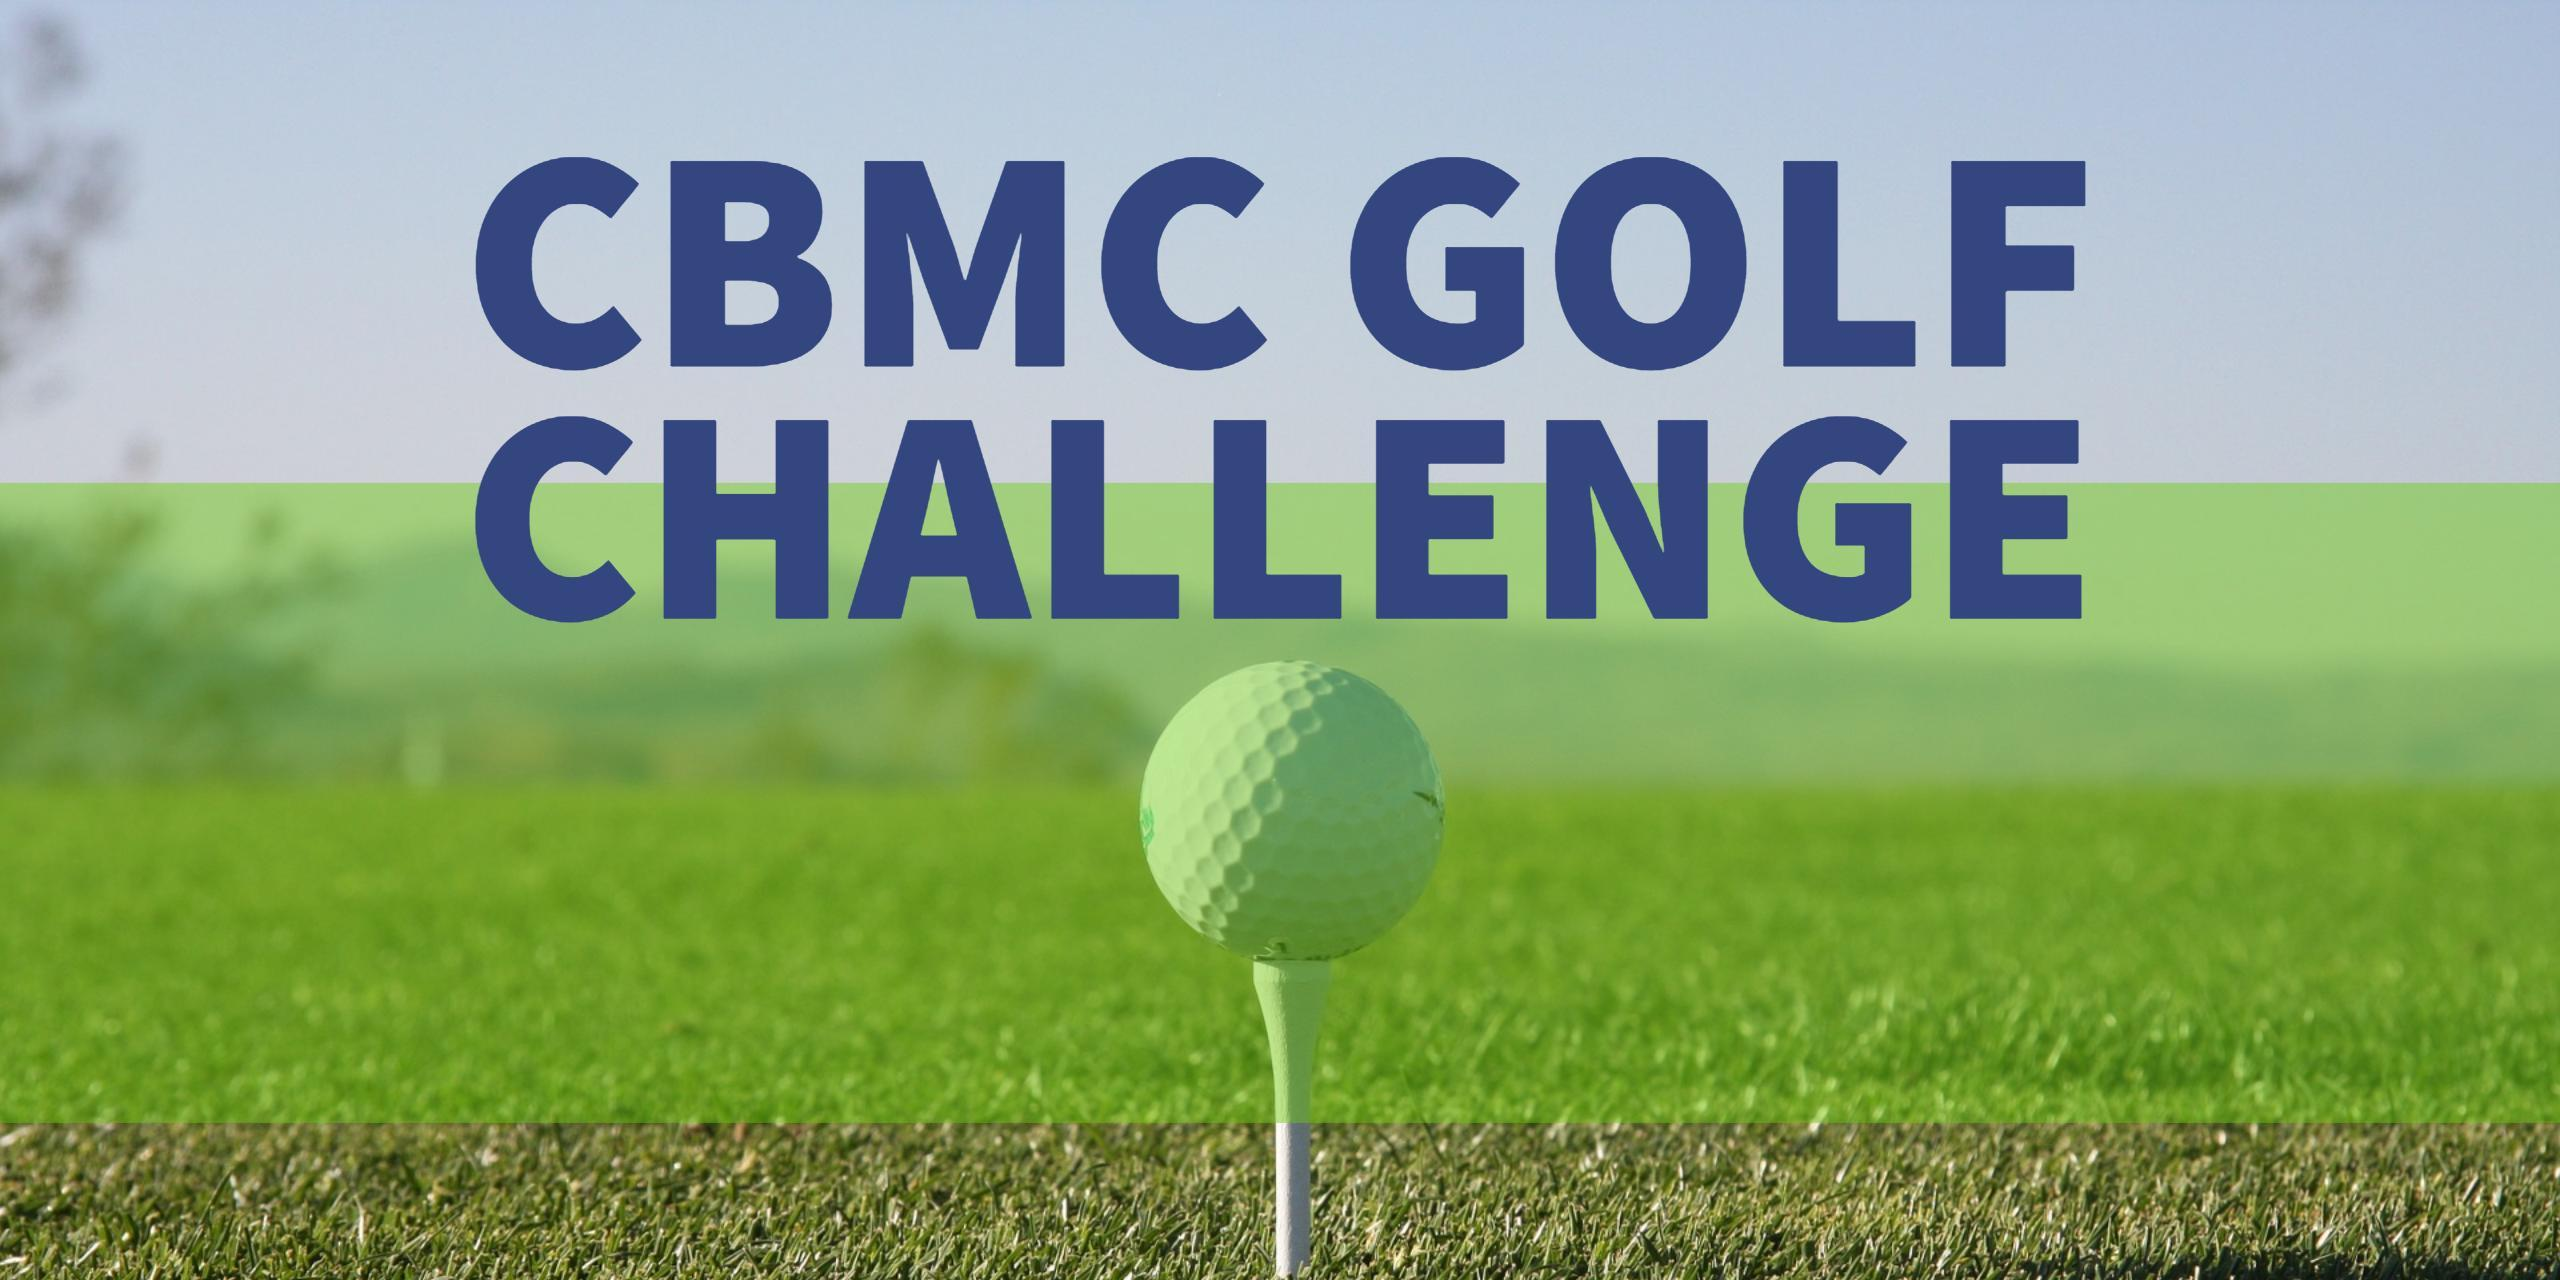 CBMC Golf Challenge wording on a golf green